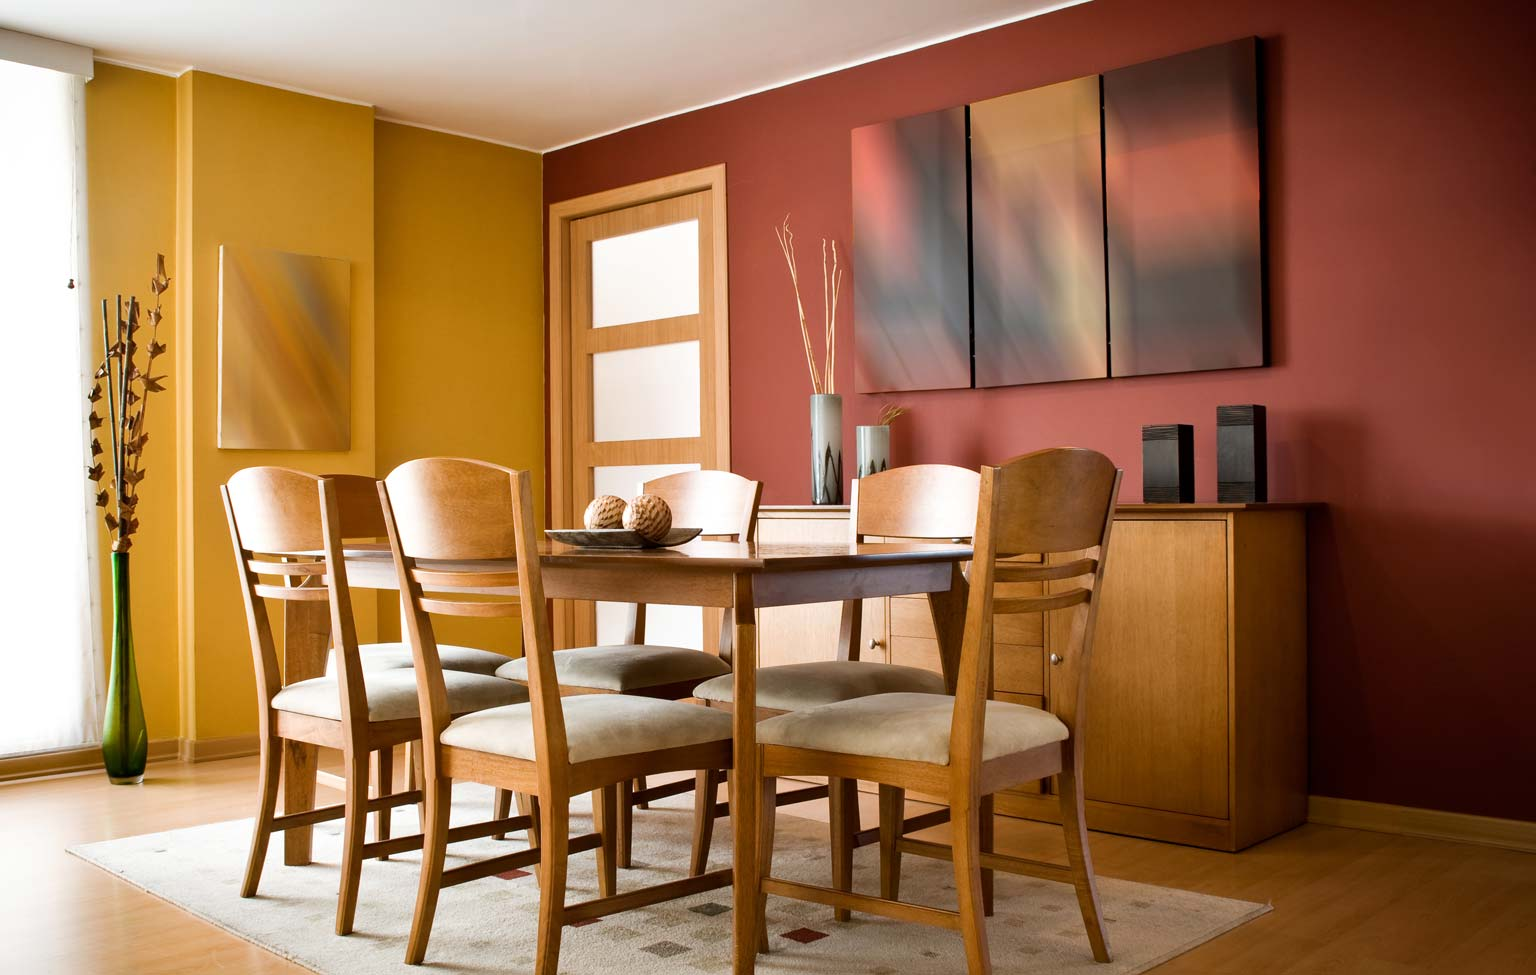 best colors for living room 2016 yellow and brown images 55 dining paint color ideas inspiration gallery